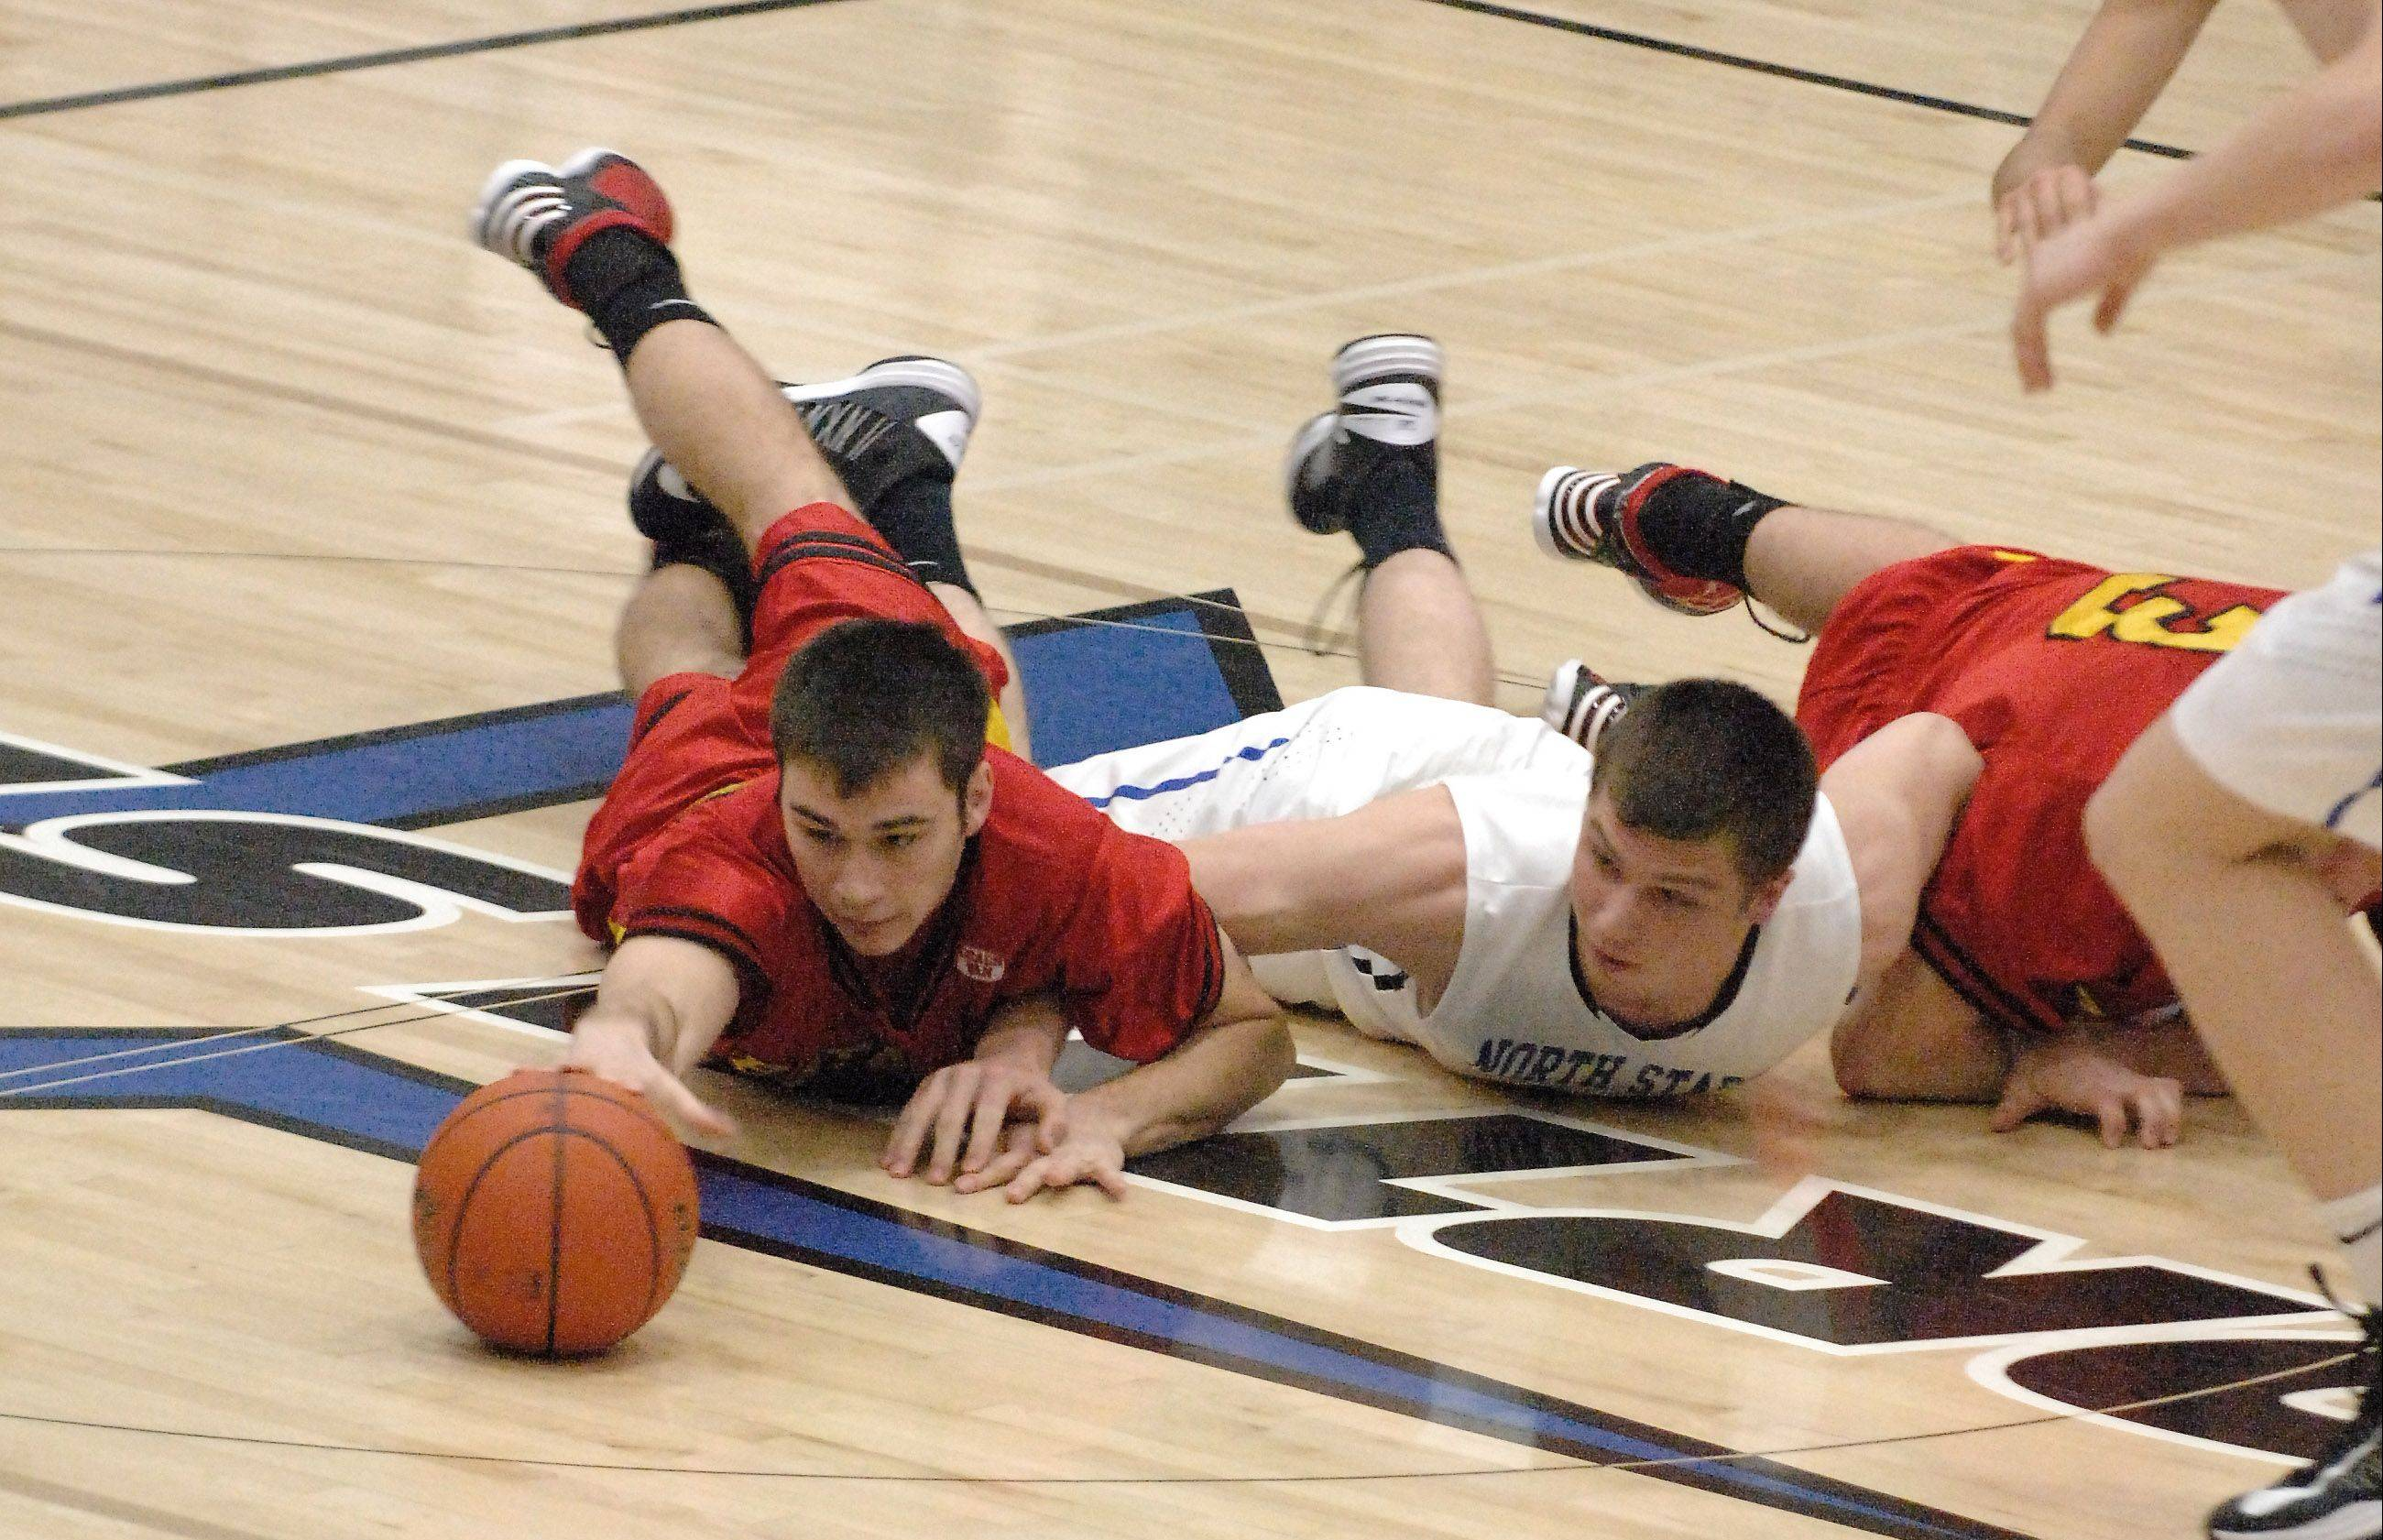 Batavia's Zach Strittmatter and St. Charles North's Ryan Thomas hit the deck for a loose ball.